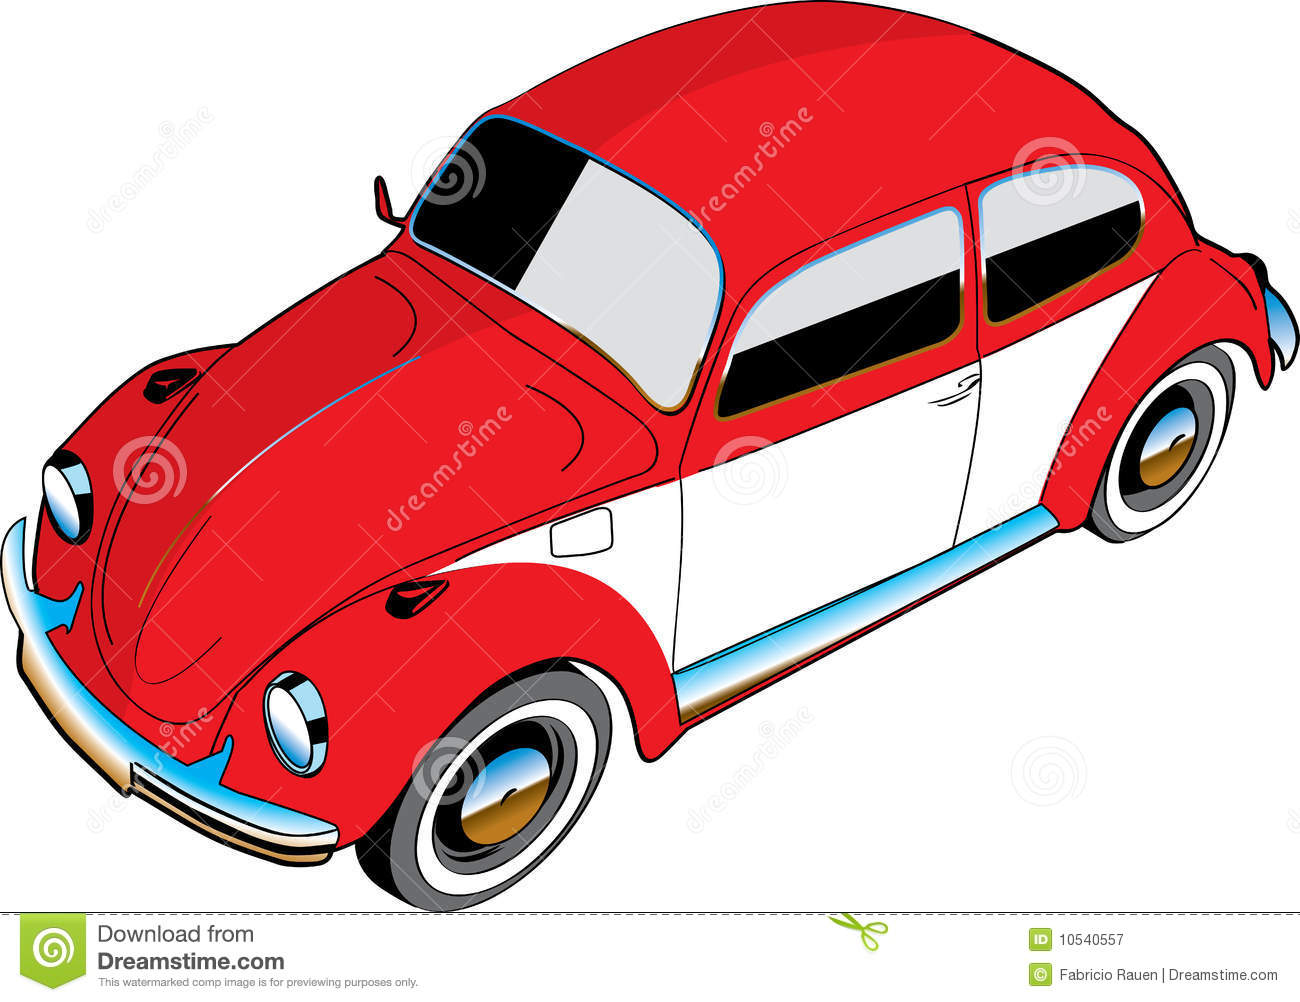 Illustrated VW Beetle Car Royalty Free Stock Photography - Image: 10540557